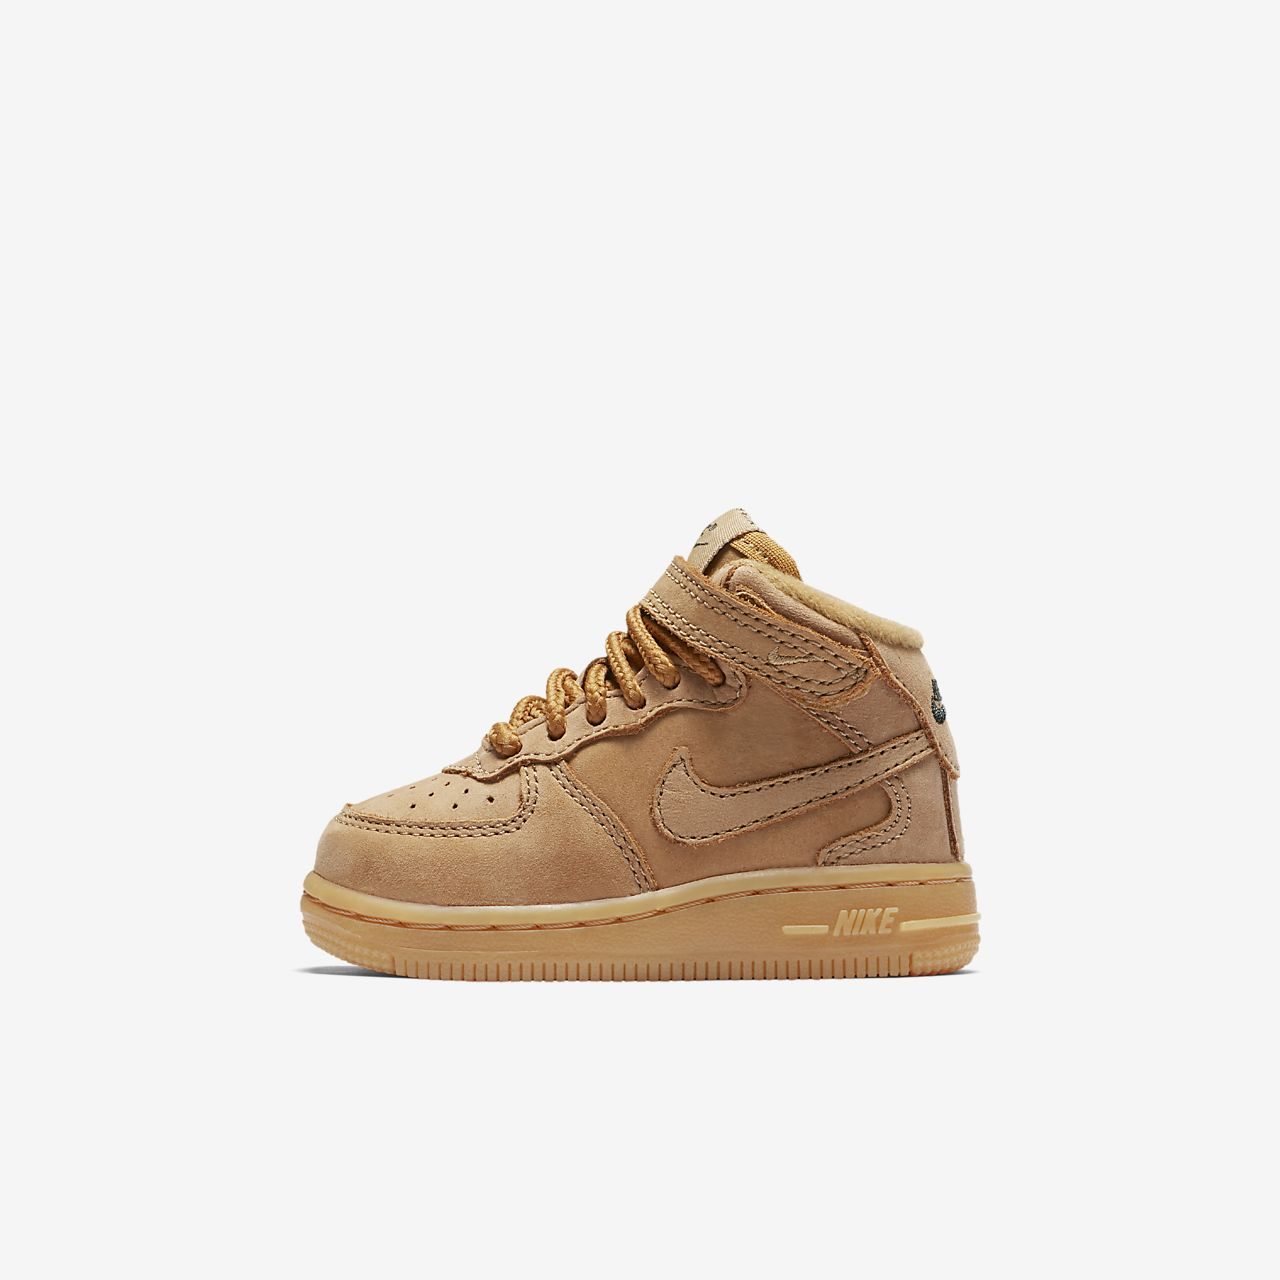 Nike Air Force 1 Mid marrone